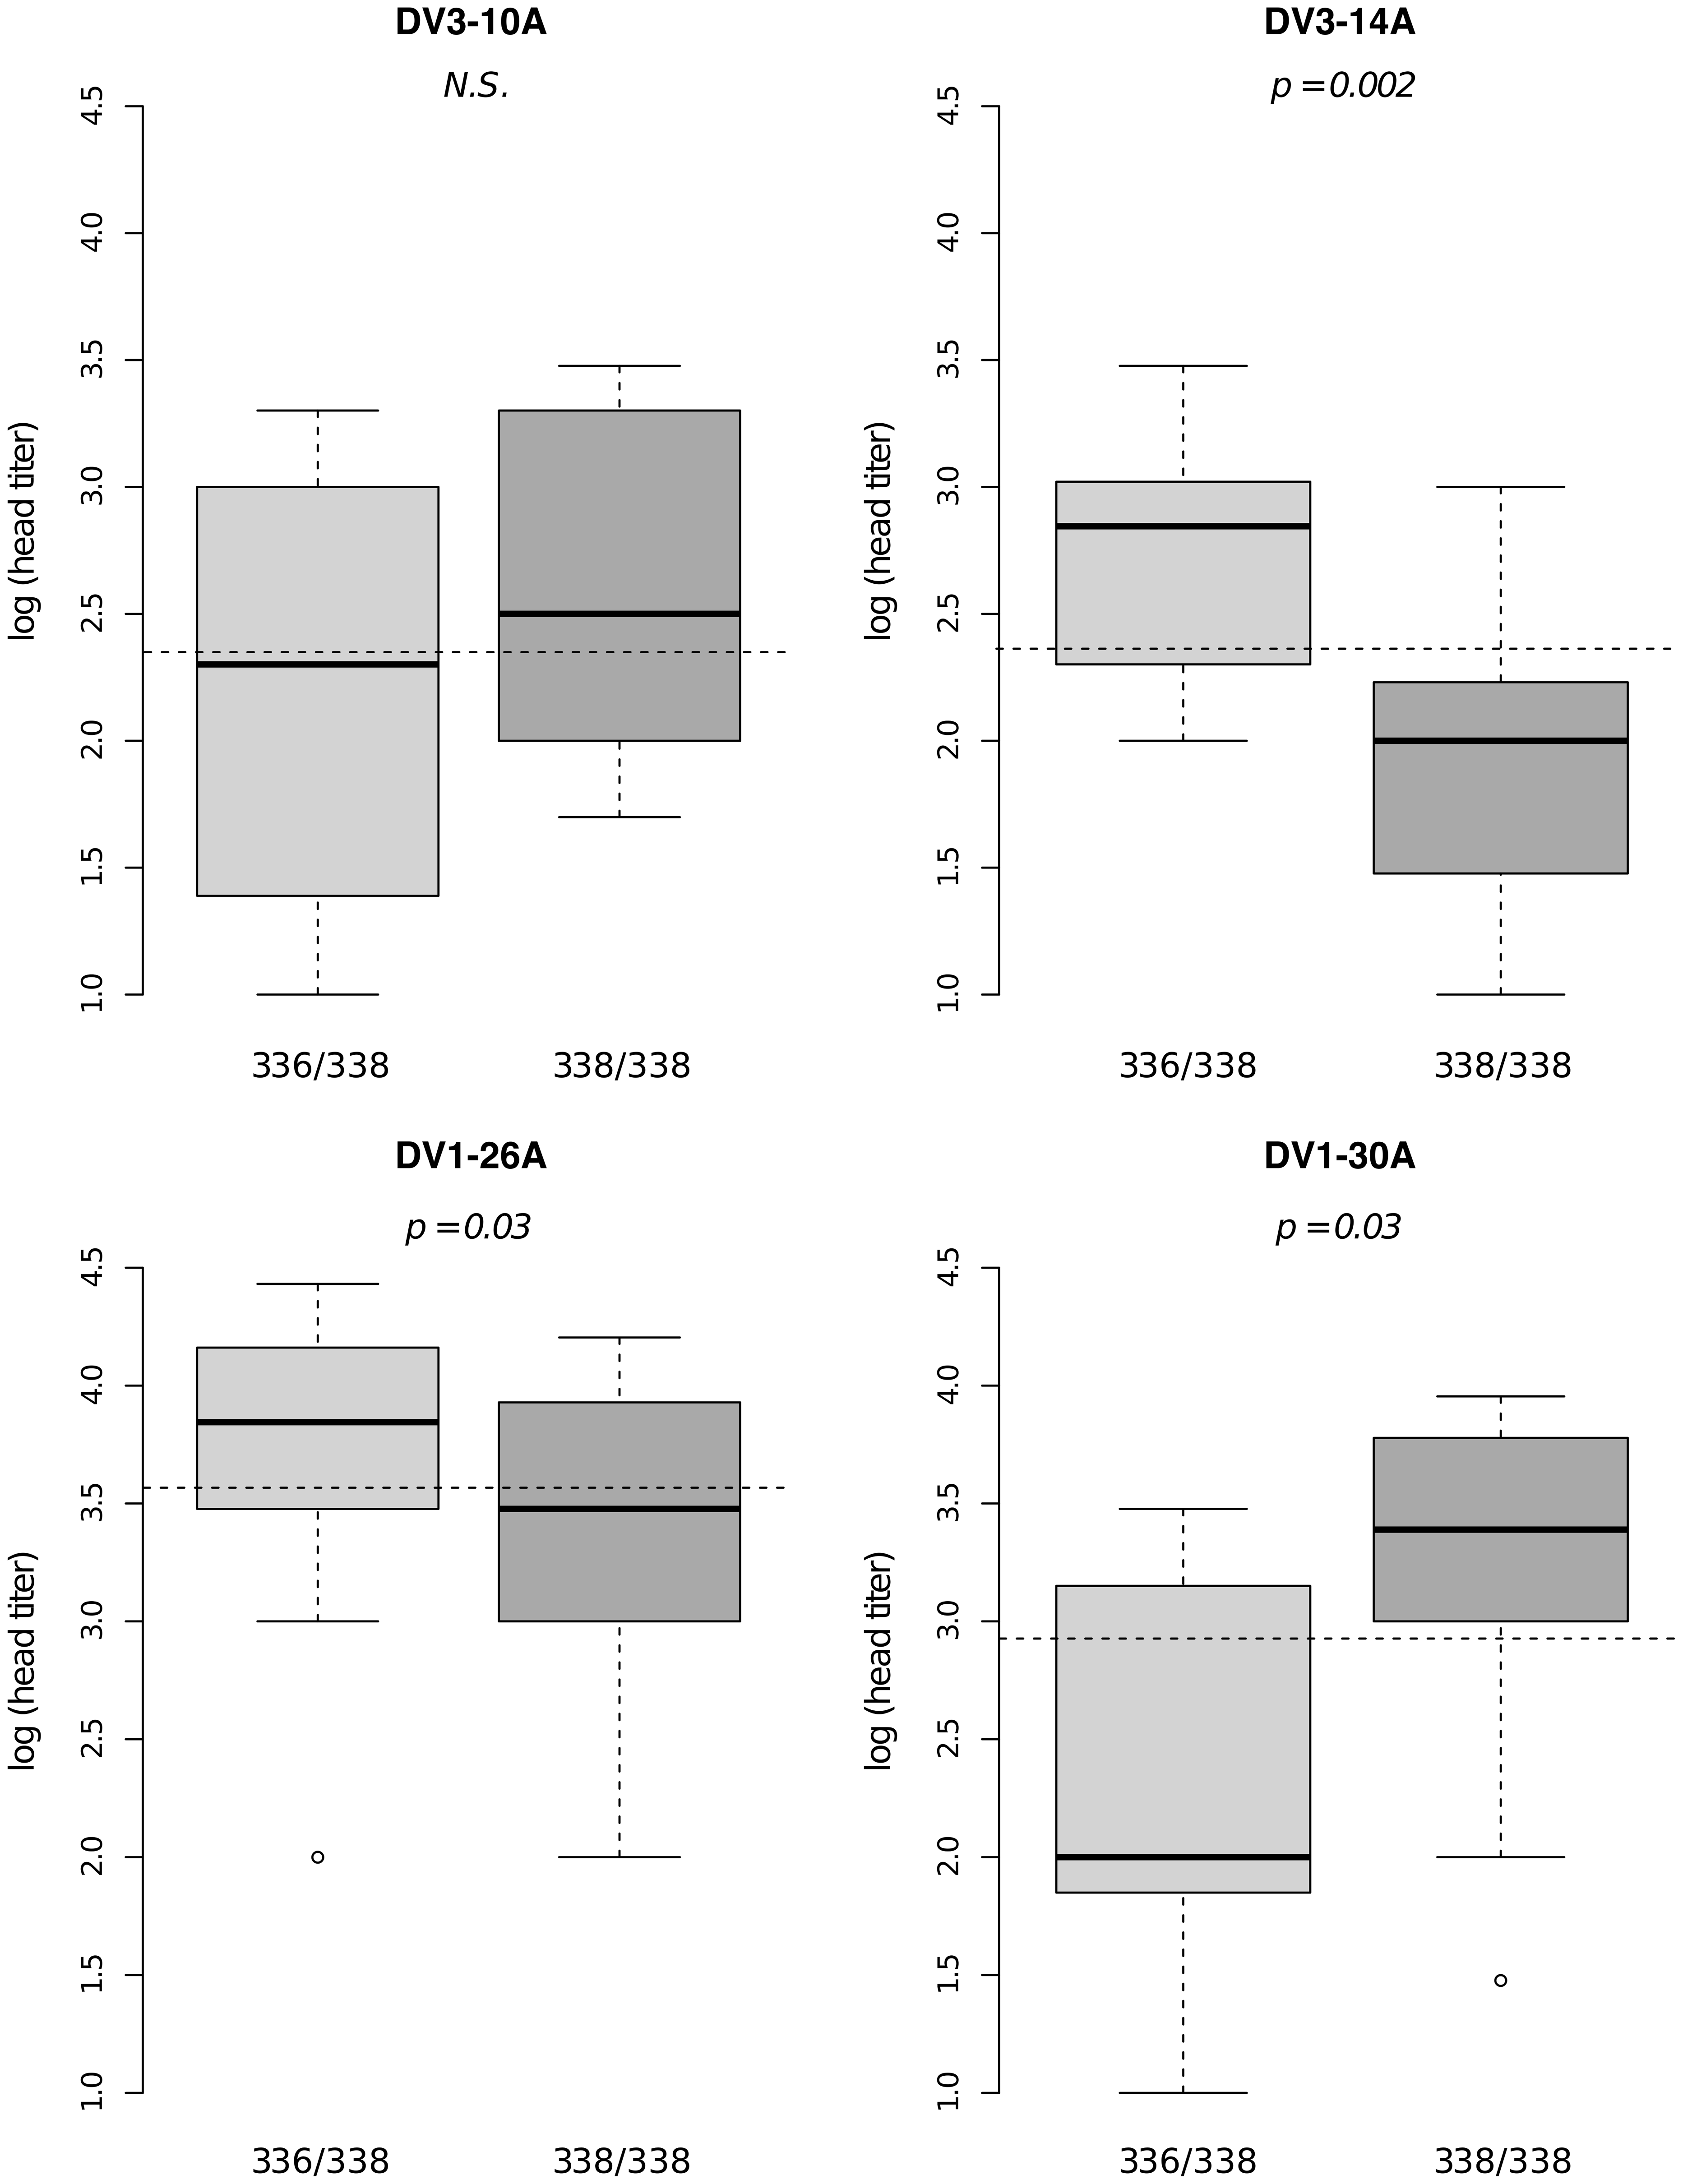 Isolate-specific association between marker 201AAT1 genotype and dissemination titer.